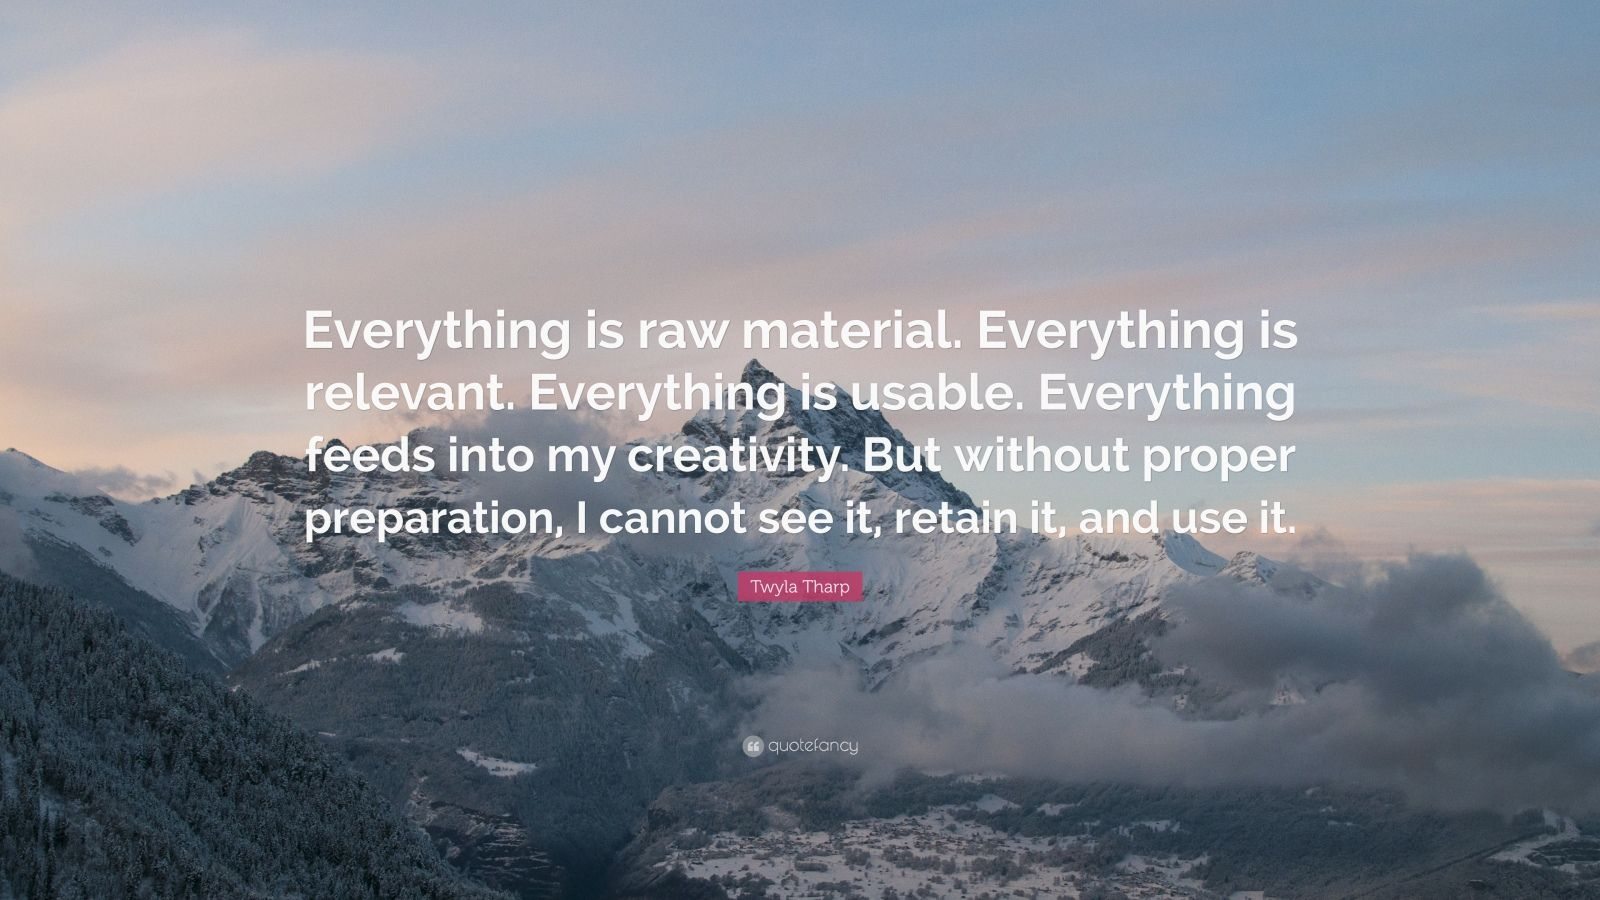 """Twyla Tharp Quote: """"Everything is raw material. Everything is relevant. Everything is usable. Everything feeds into my creativity. But without proper preparation, I cannot see it, retain it, and use it."""""""